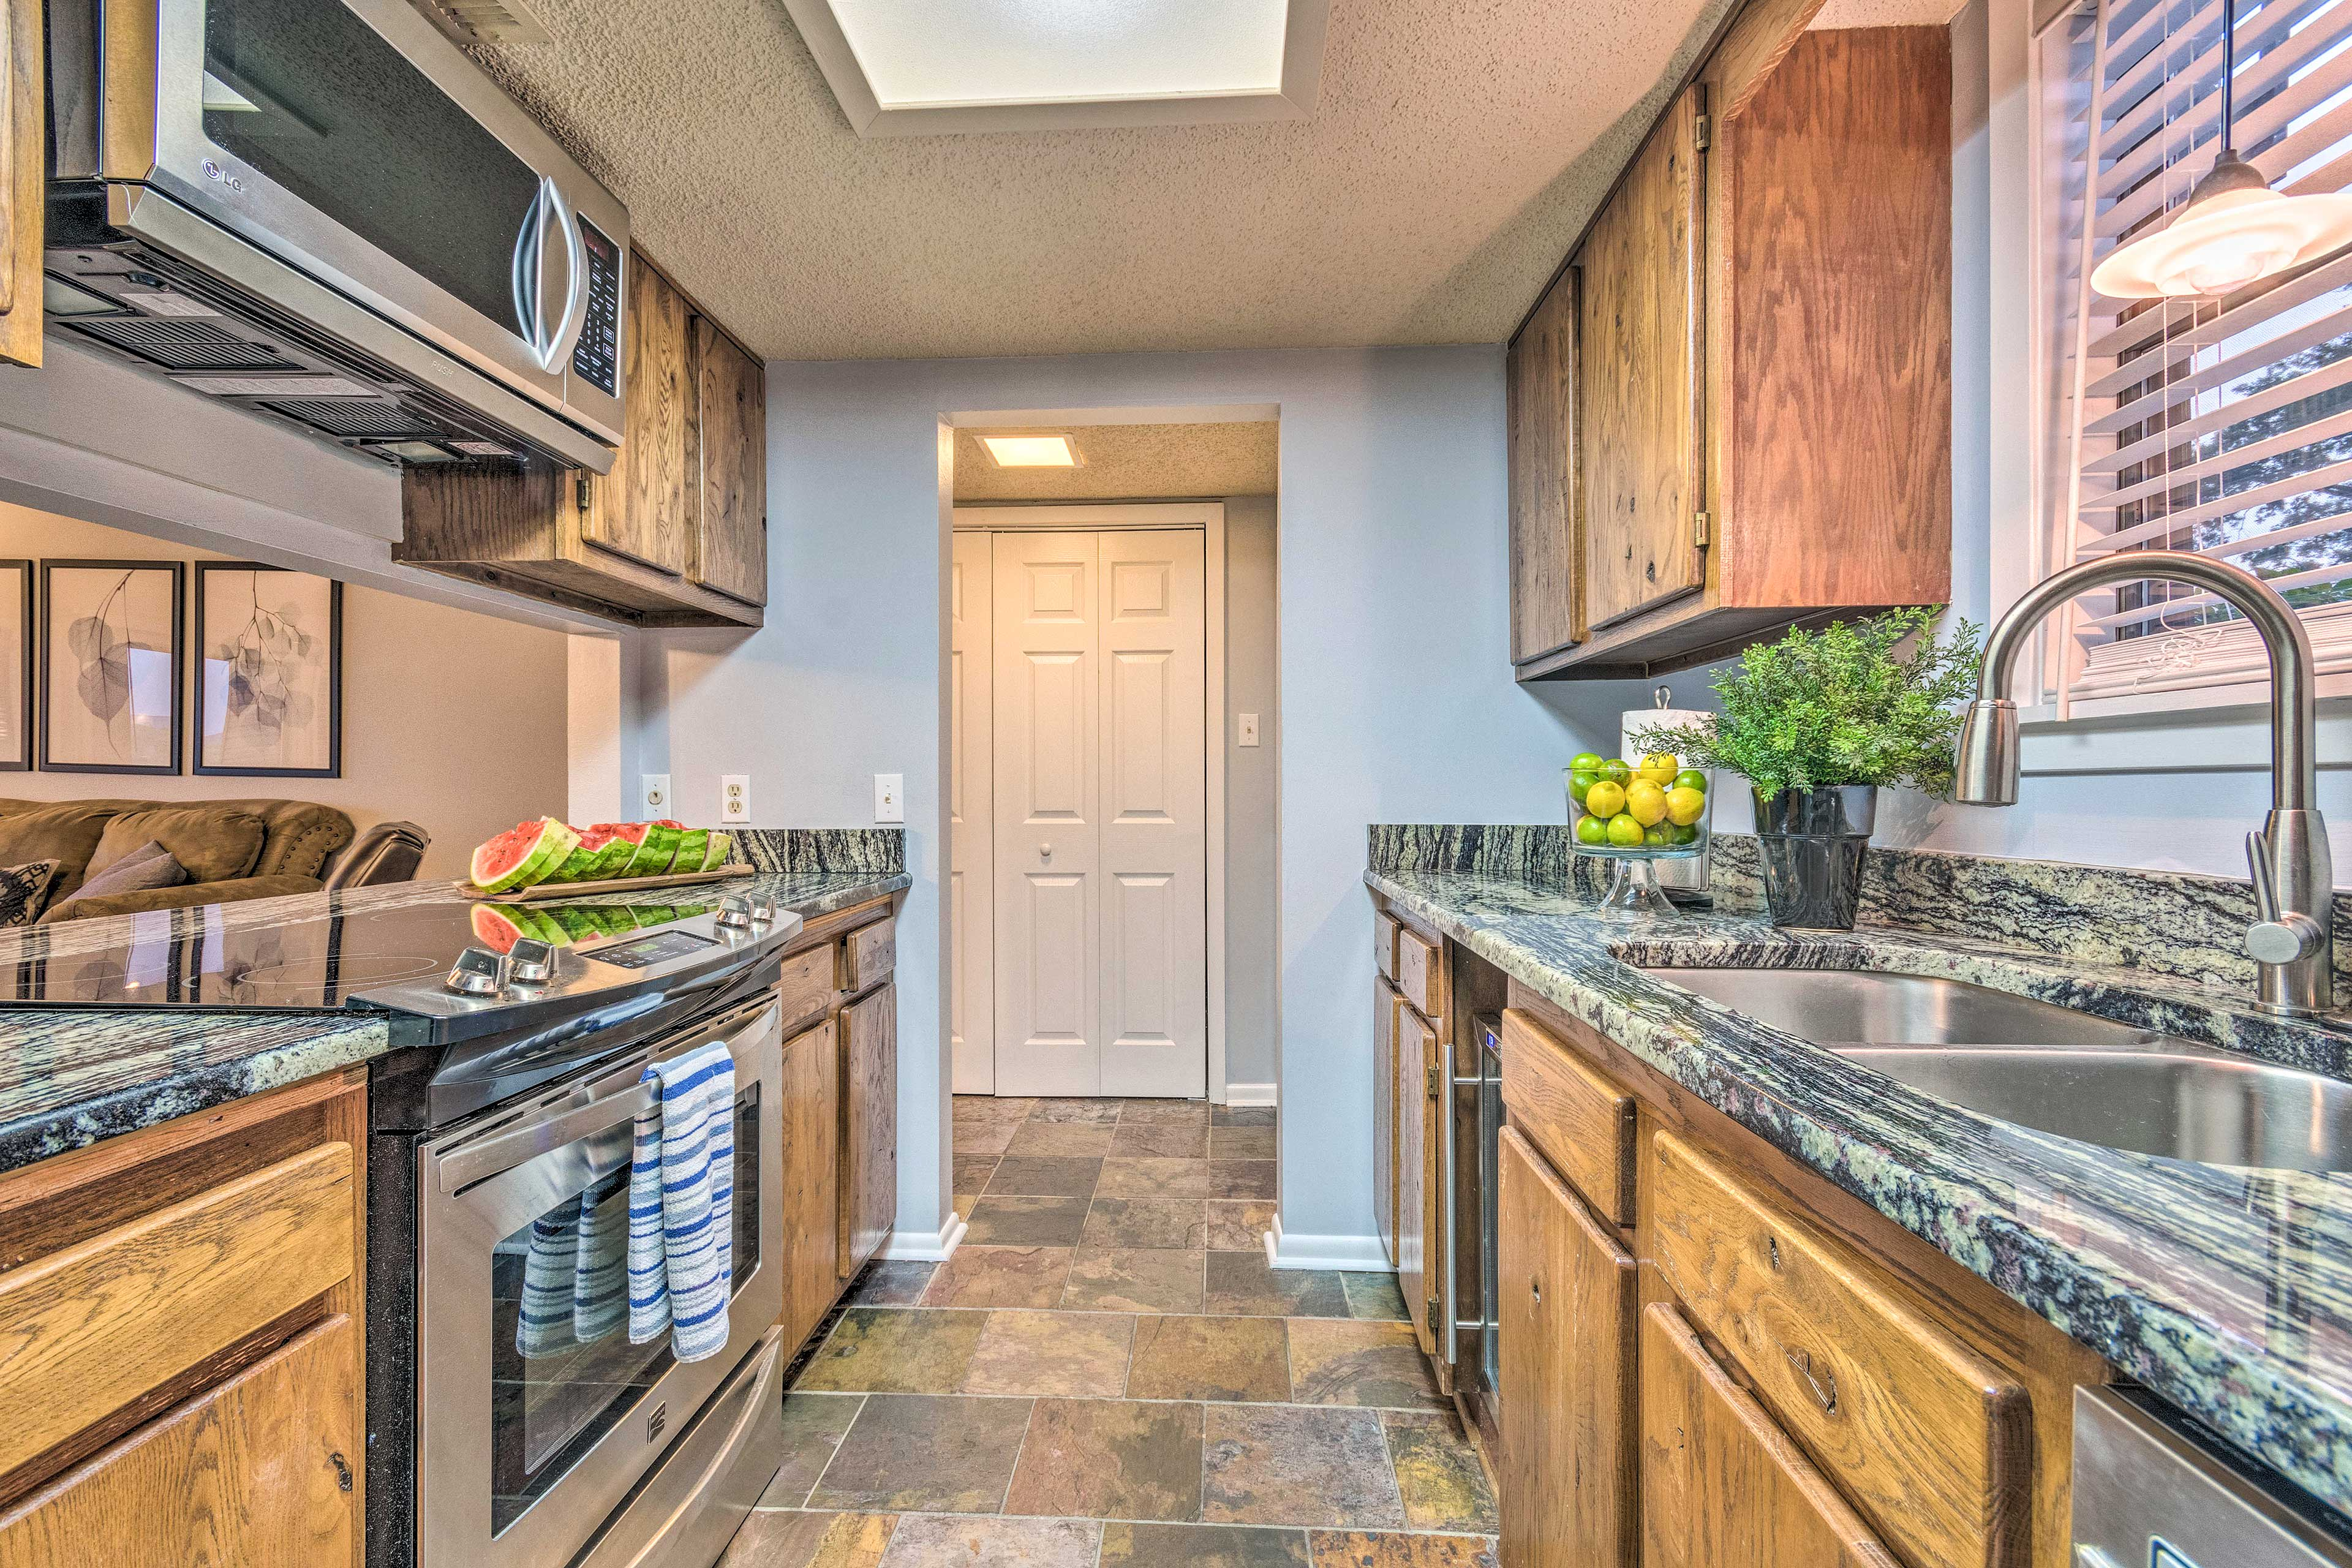 Fully equipped, the kitchen has everything you need to prepare family favorites.